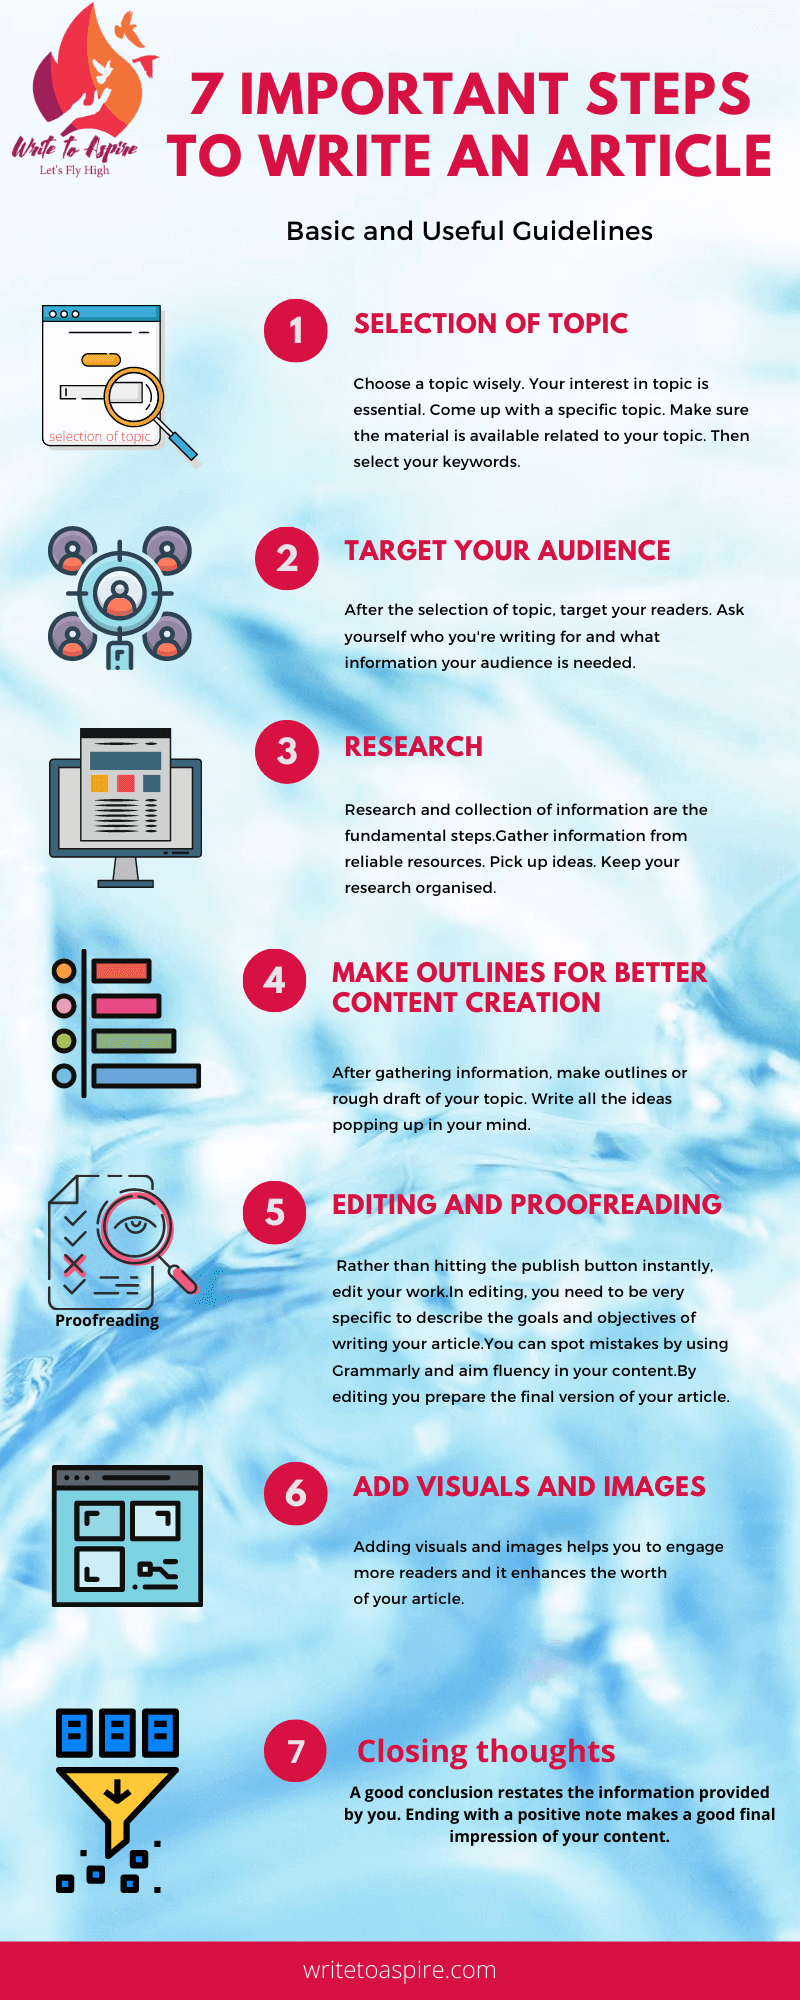 7 important steps to write an article